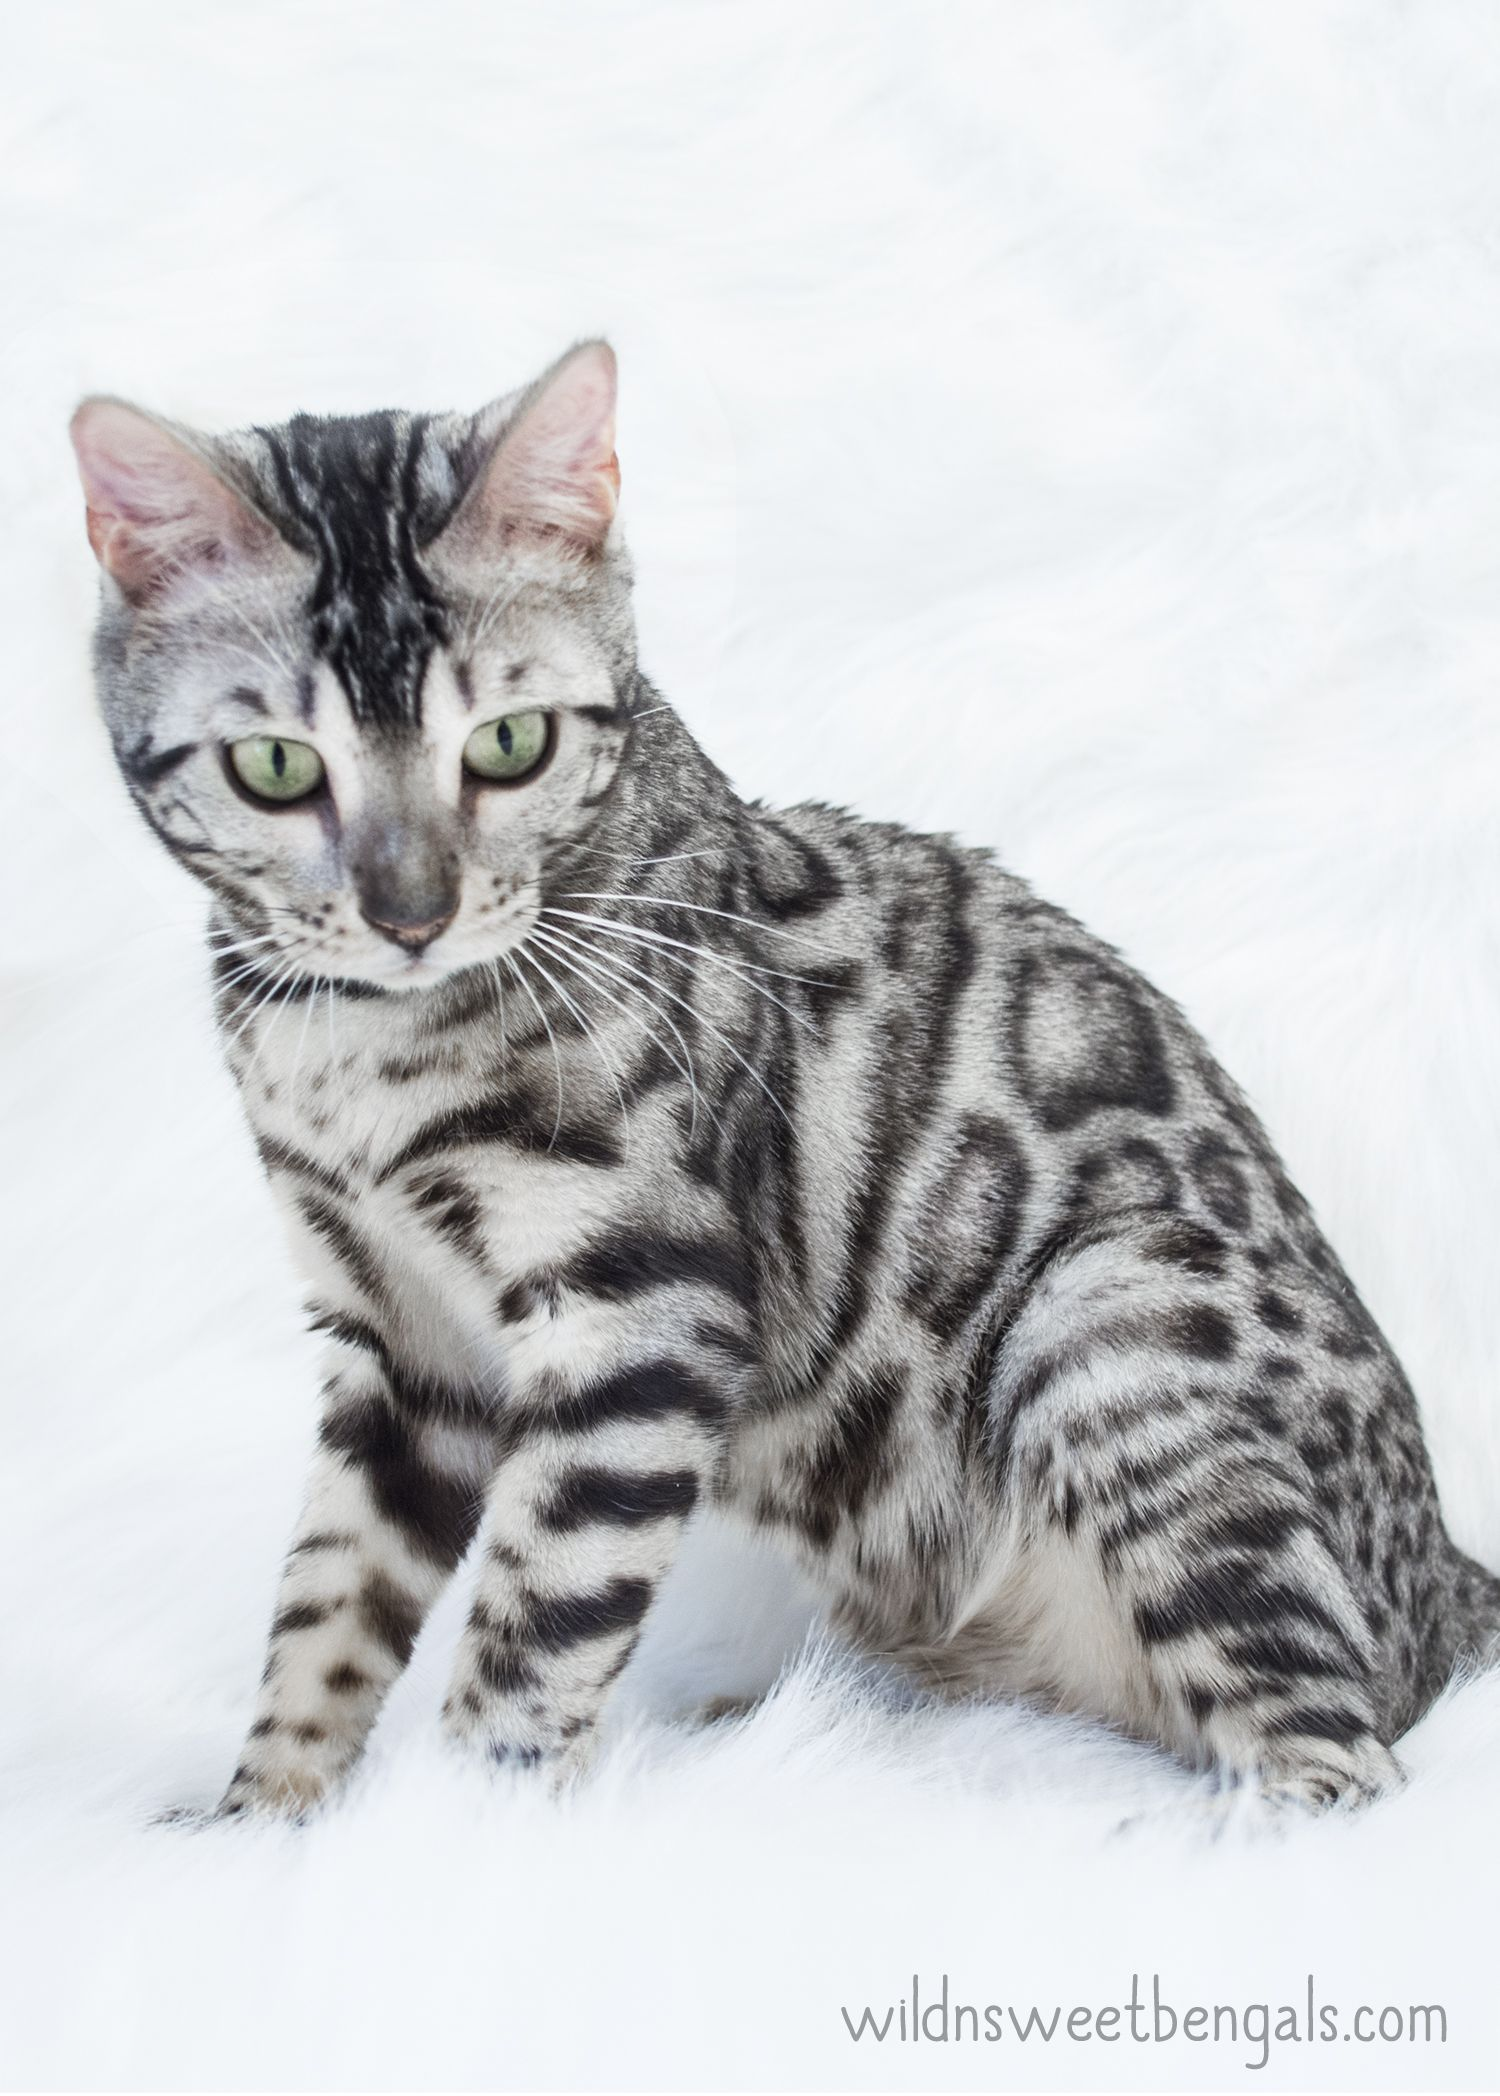 One Of Our Beautiful Silver Bengal Queens At Wild N Sweet Bengals Cattery More Photos Of Our Cats And Kittens At Ww Silver Bengal Cat Bengal Kitten Bengal Cat